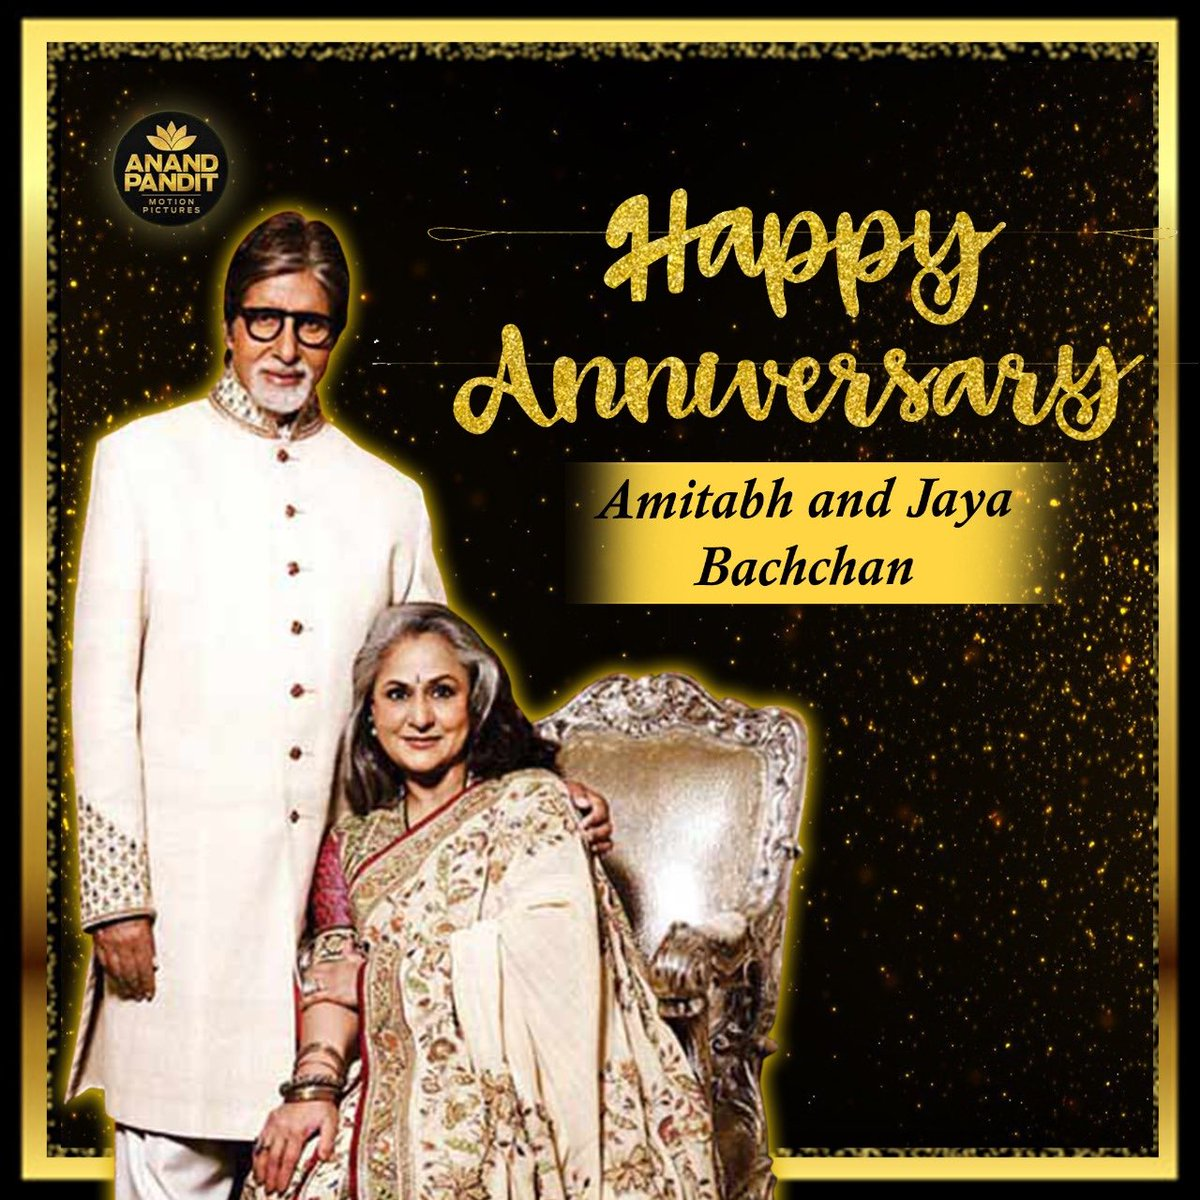 Happy anniversary to the most loved and dignified couple on and off screen. Amitji and Jayaji, you'll have truly transformed the concept of love over these years! @SrBachchan #JayaBachchan #HappyAnniversaryABJB https://t.co/7eRulM3SUP